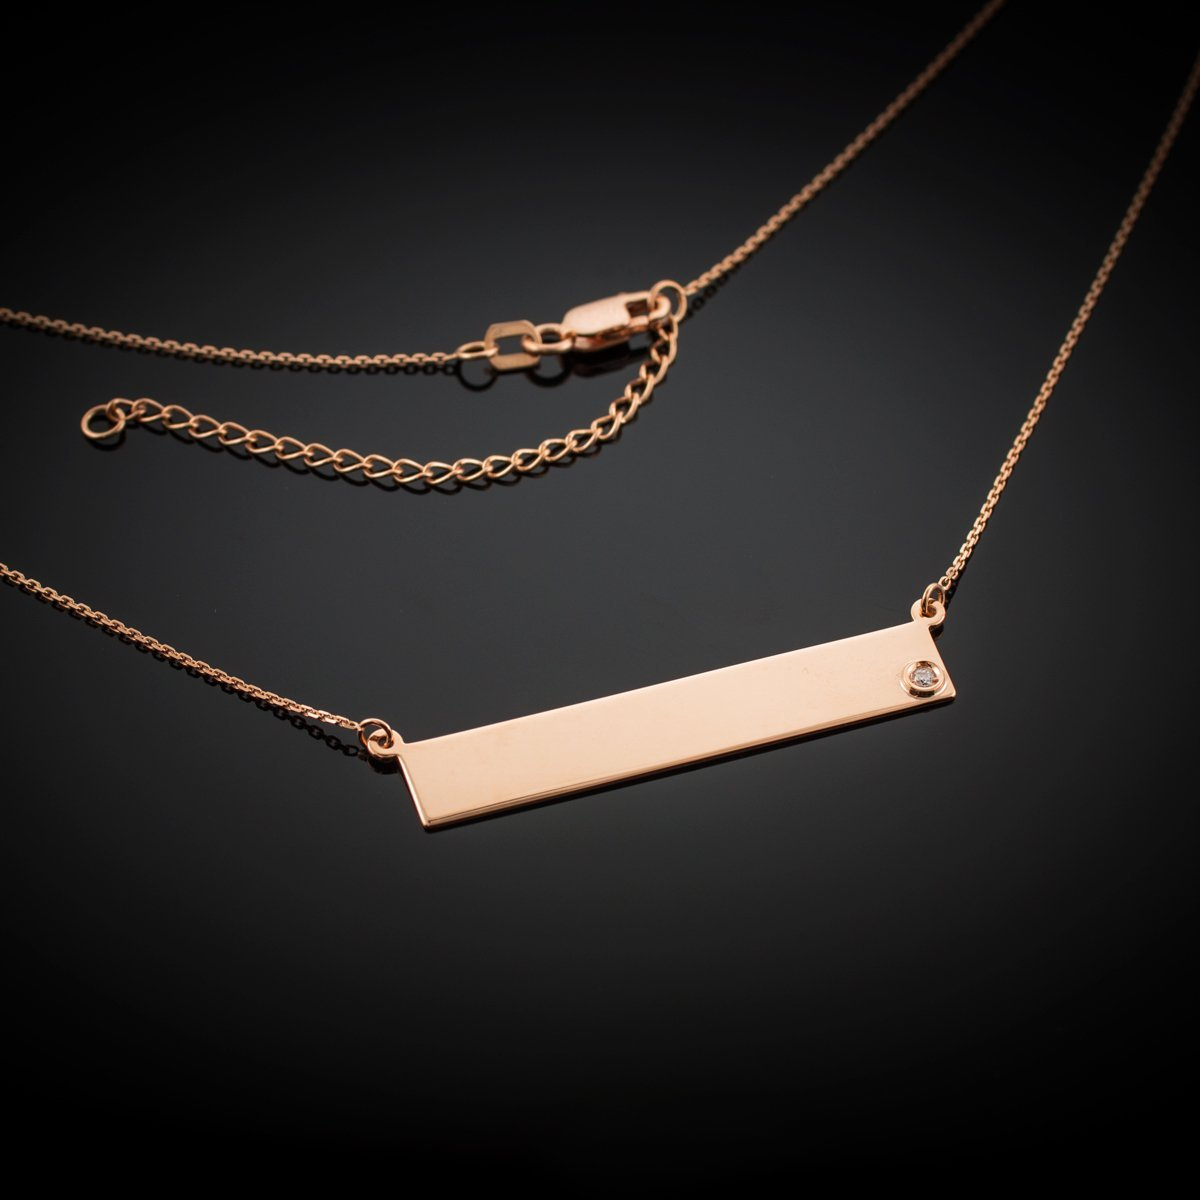 Dainty 14k Rose Gold Engravable Personalized Diamond Bar Necklace for Women